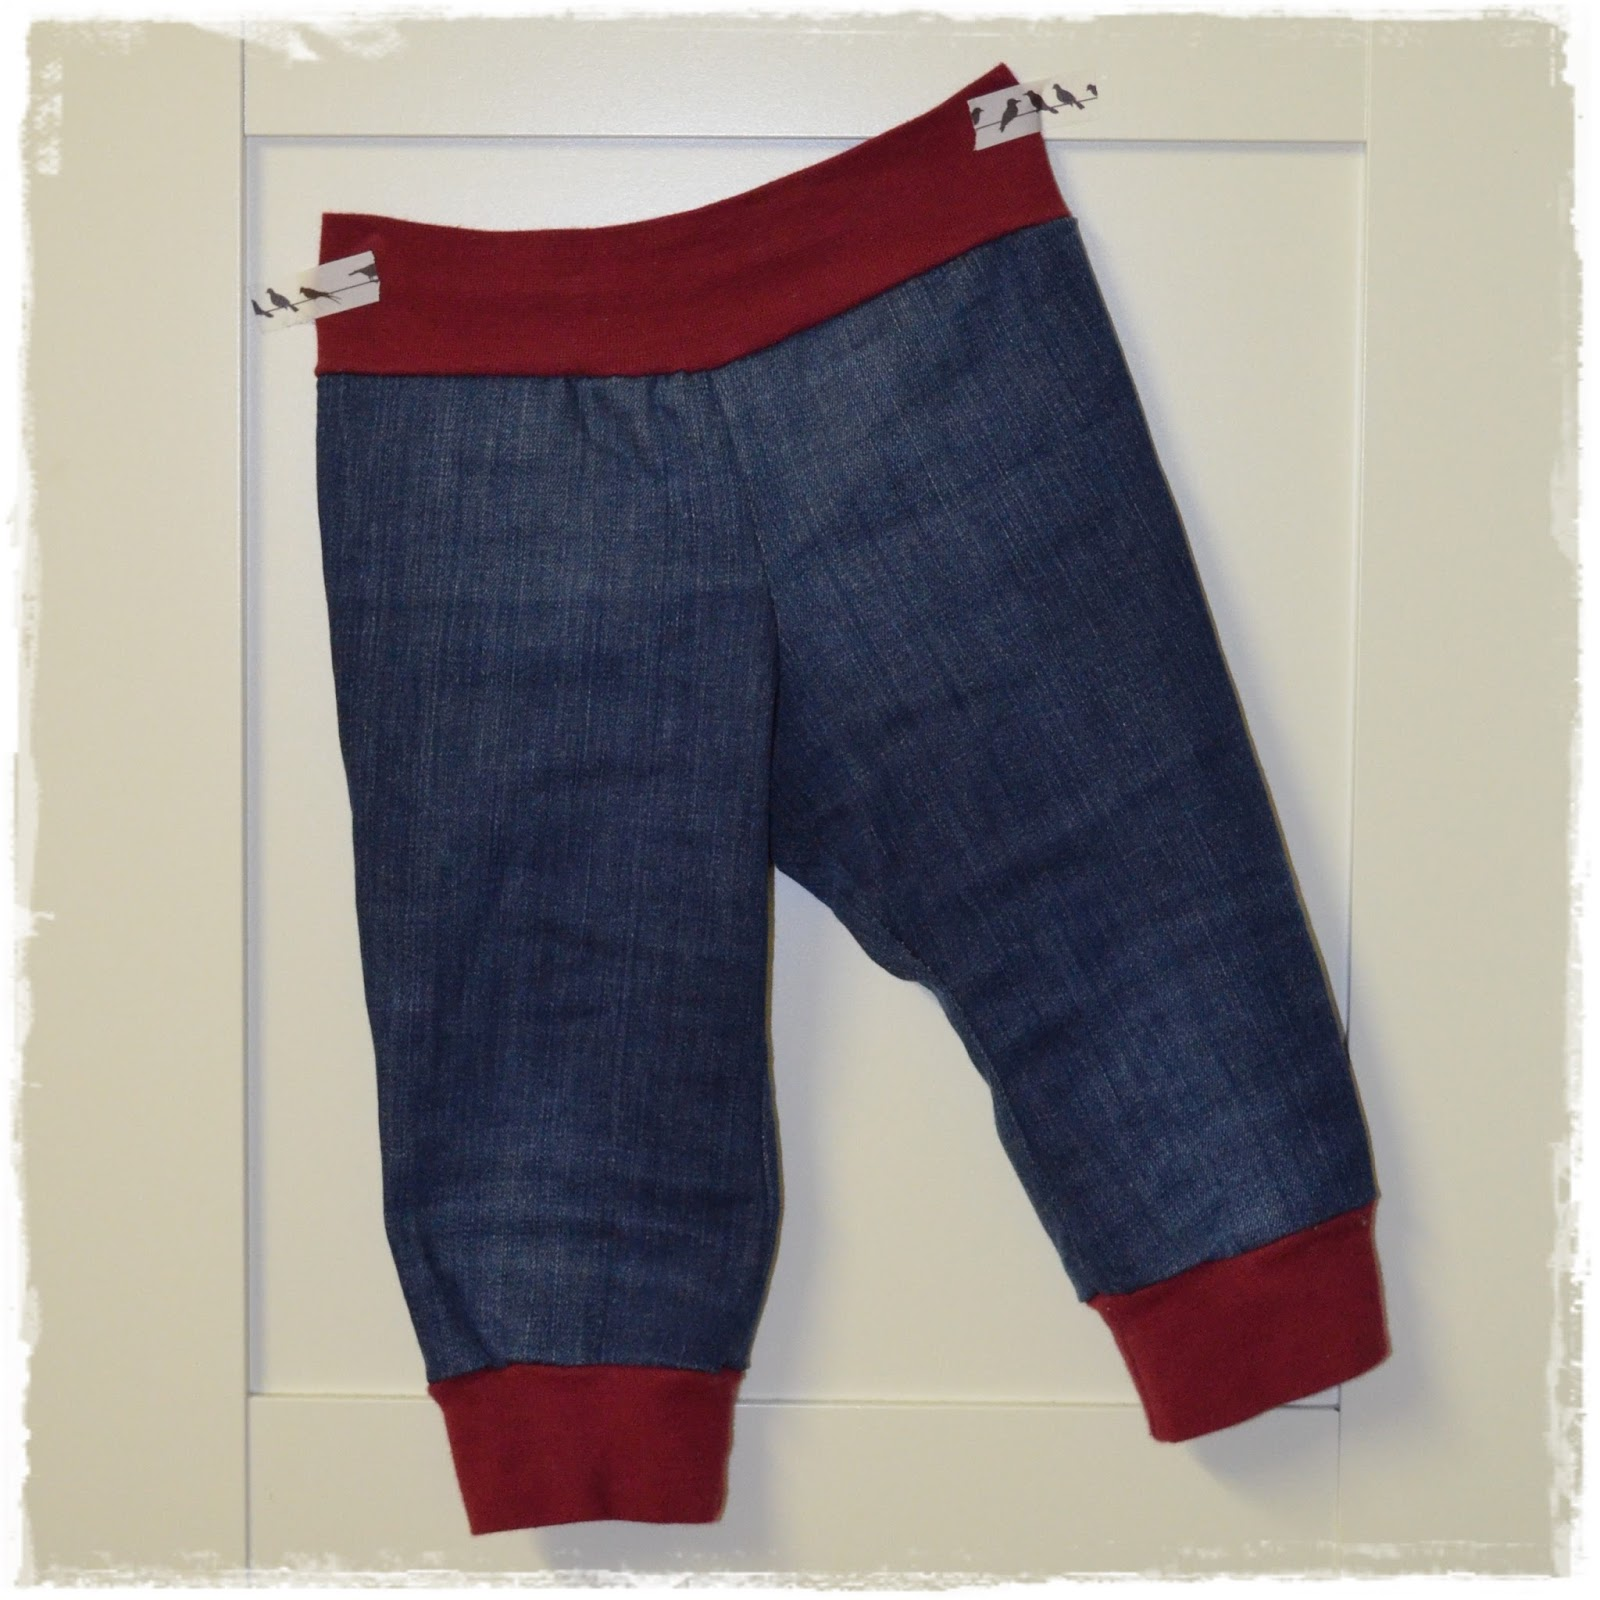 CHICHA: Upcycling Jeans